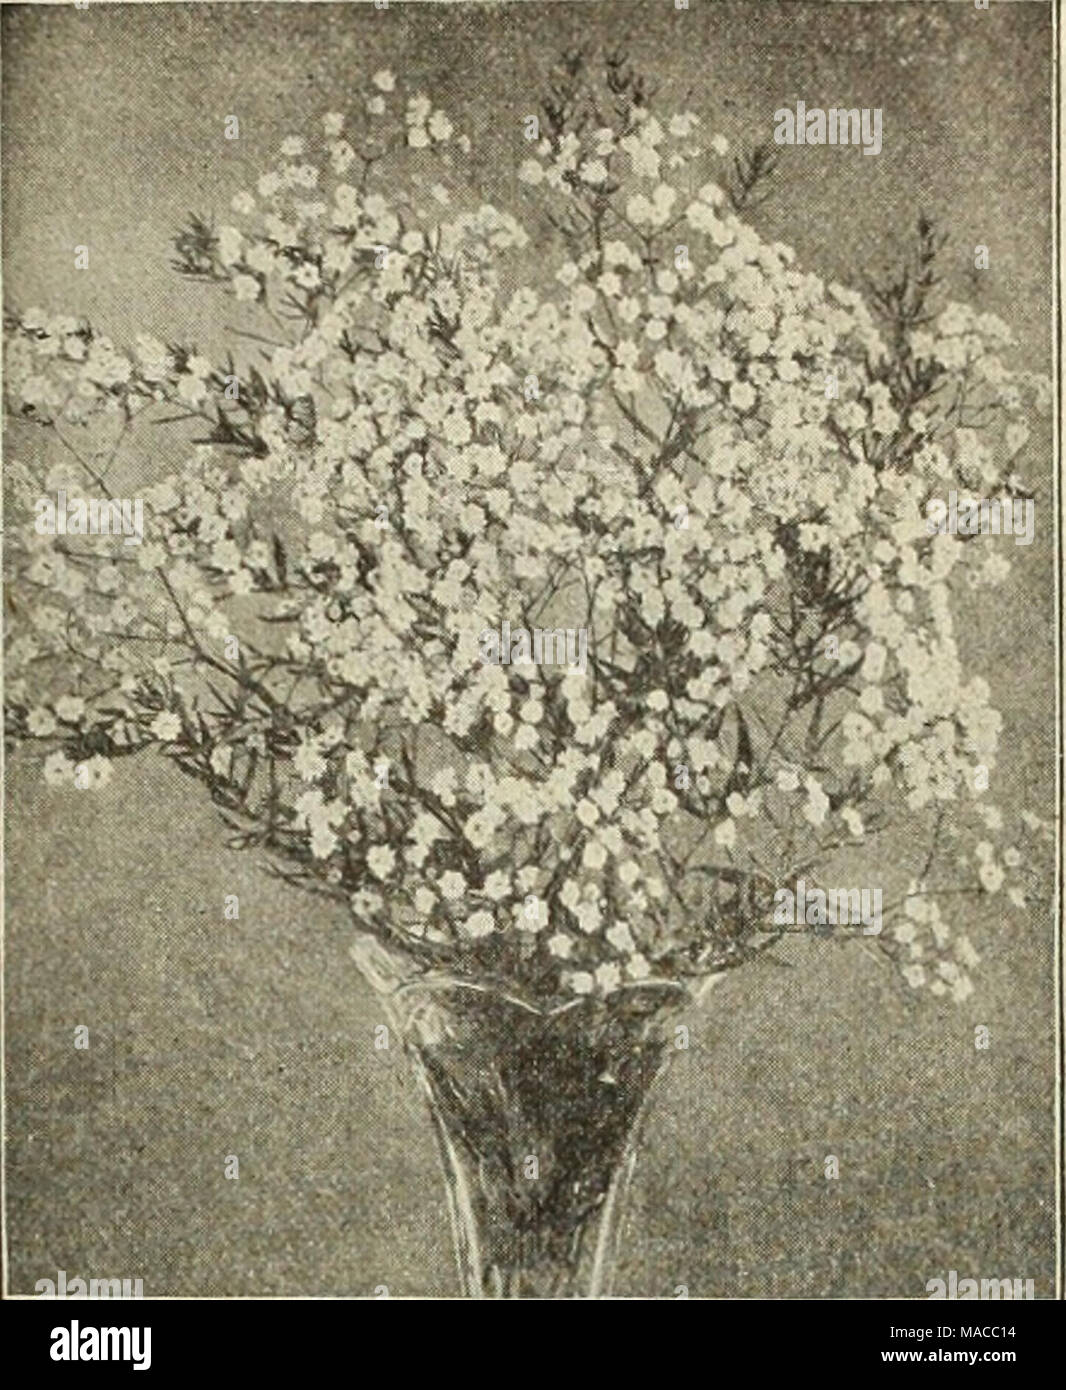 . Dreer's wholesale price list of seeds plants and bulbs for florists : fertilizers, insecticides, tools and sundries . GYPSOPHILA PANICULATA FL. PL. Geum (Avens). Atrosanguinea. 3-inch pots 1 00 7 00 Coccineum. 3-inch pots 1 00 7 00 Heldreichi. 3-inch pots 1 00 7 00 Mrs. Bradshaw iNewi. 3-inch pots 1 50 10 00 Gillenia (Bowman's Root). Trifoliata 2 00 15 00 Glechoma or Nepeta. Variegata 'Variegated Groundsel or Ground Ivy). 3-inch pots 85 6 00 Globularia. Tricosantha 2 00 15 00 Gunnera. Scabra. Fine strong plants in 5-inch pots of this grand foliage plant. 35 cents each; $3.50 per dozen. ORNAM Stock Photo